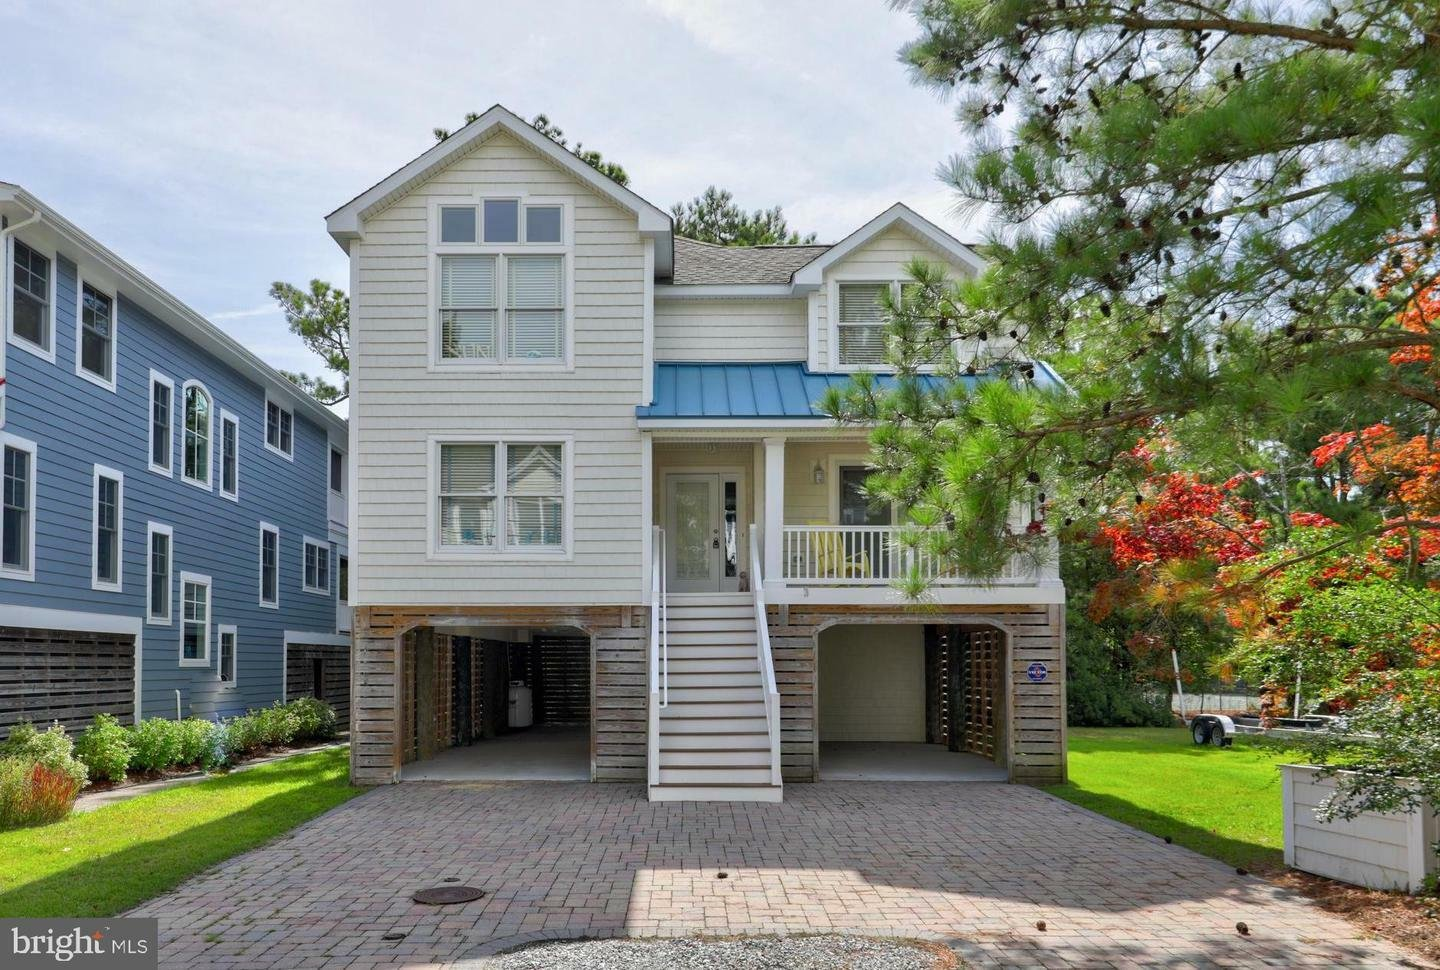 House in Bethany Beach, Delaware, United States 1 - 11593695